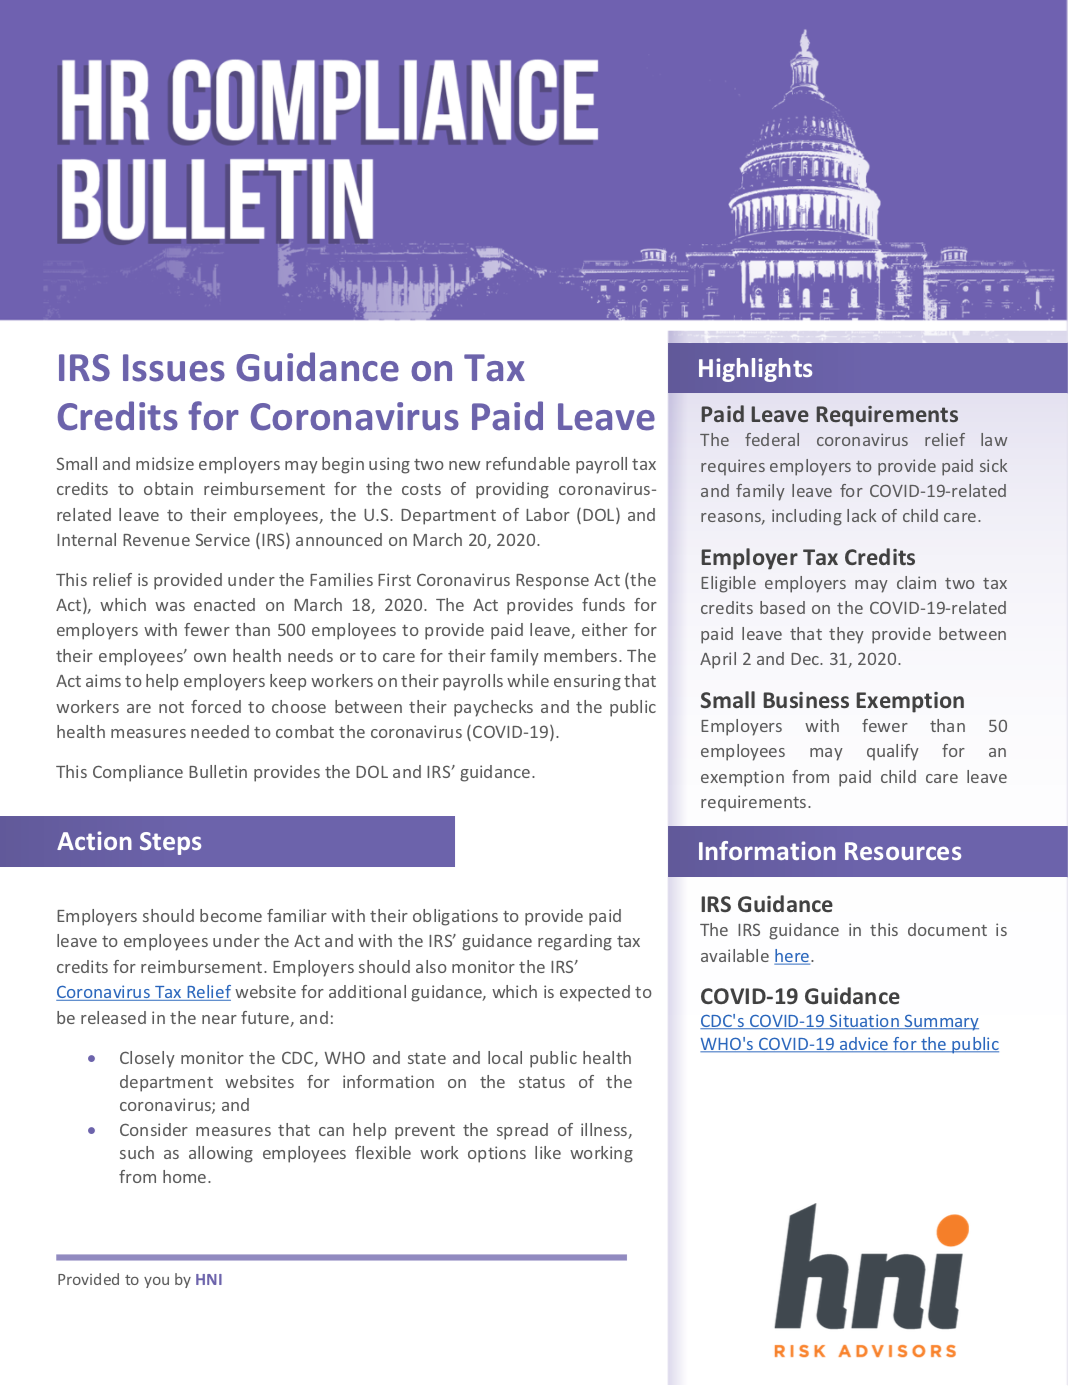 IRS Guidance on Tax Credits for Paid Leave